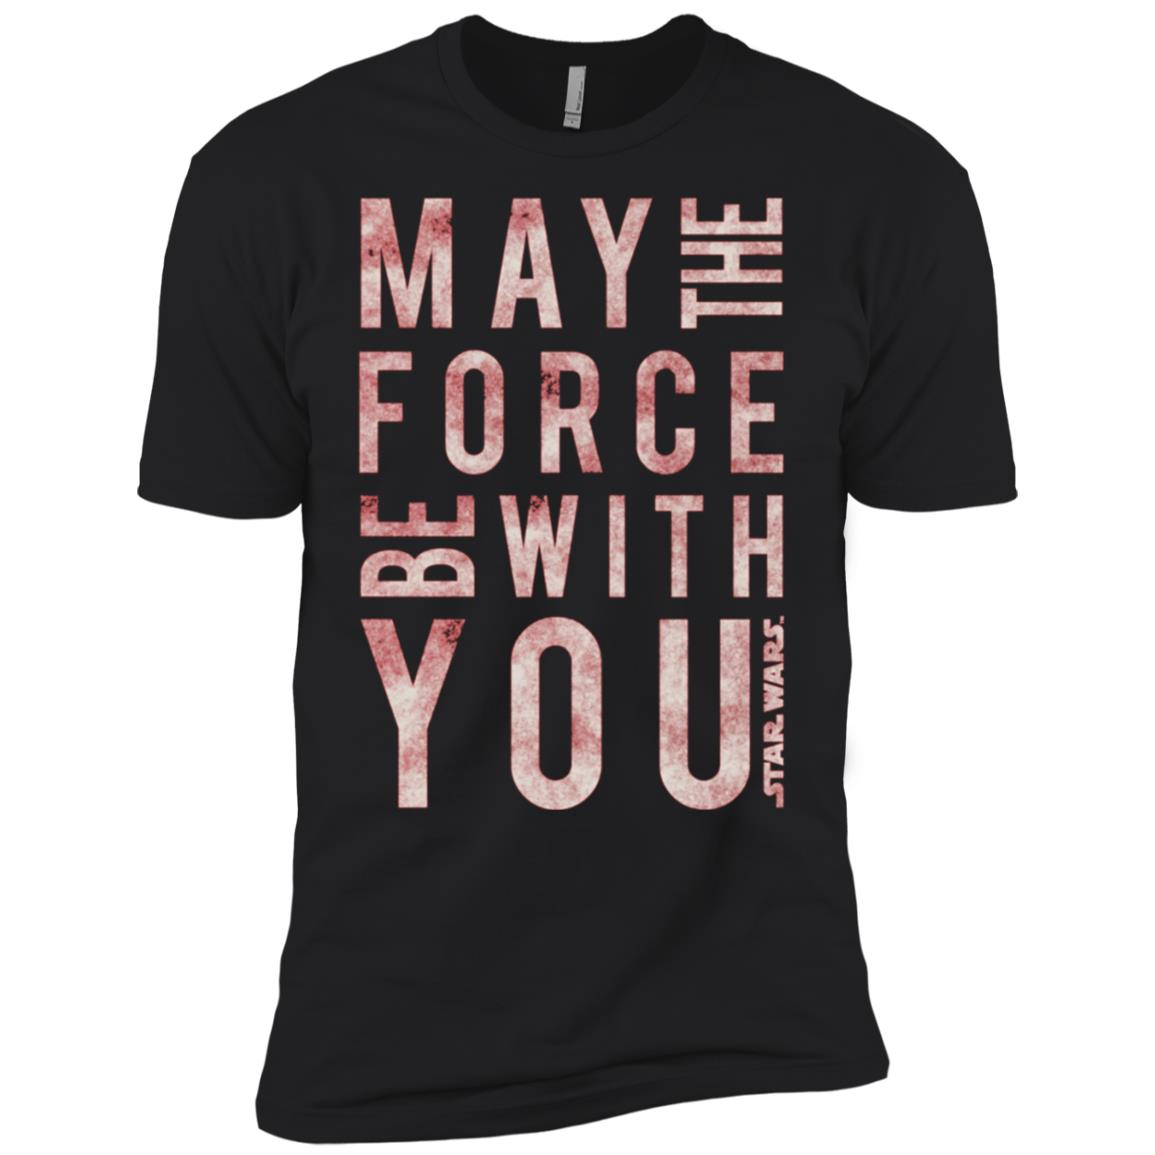 Star Wars May The Force Be With You Scrambled Men Short Sleeve T-Shirt